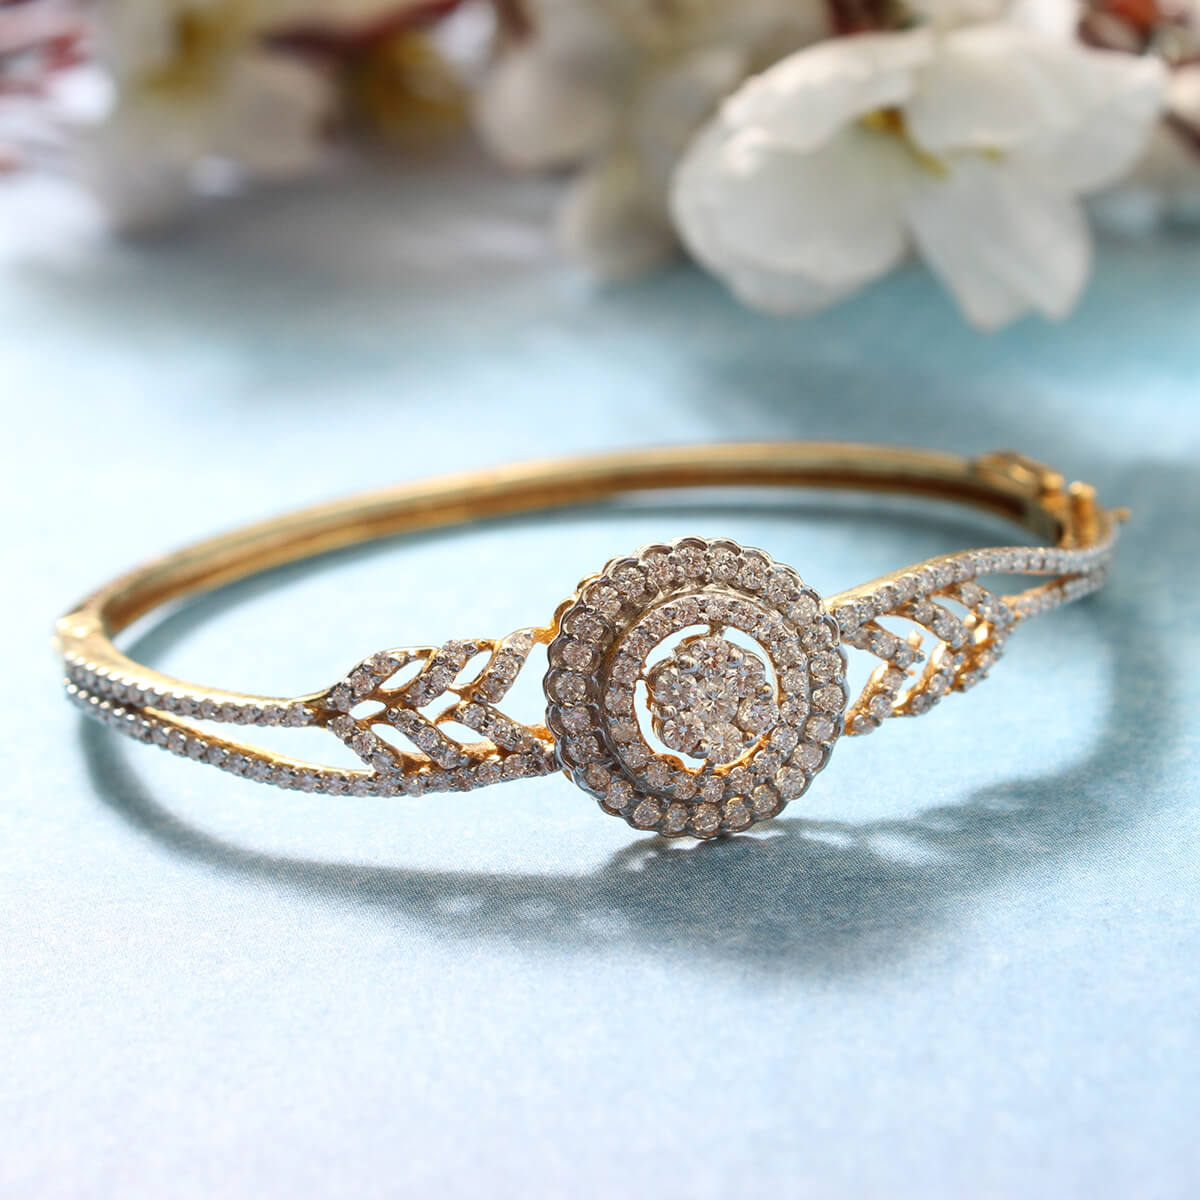 Add the sparkling radiance to your wrists!